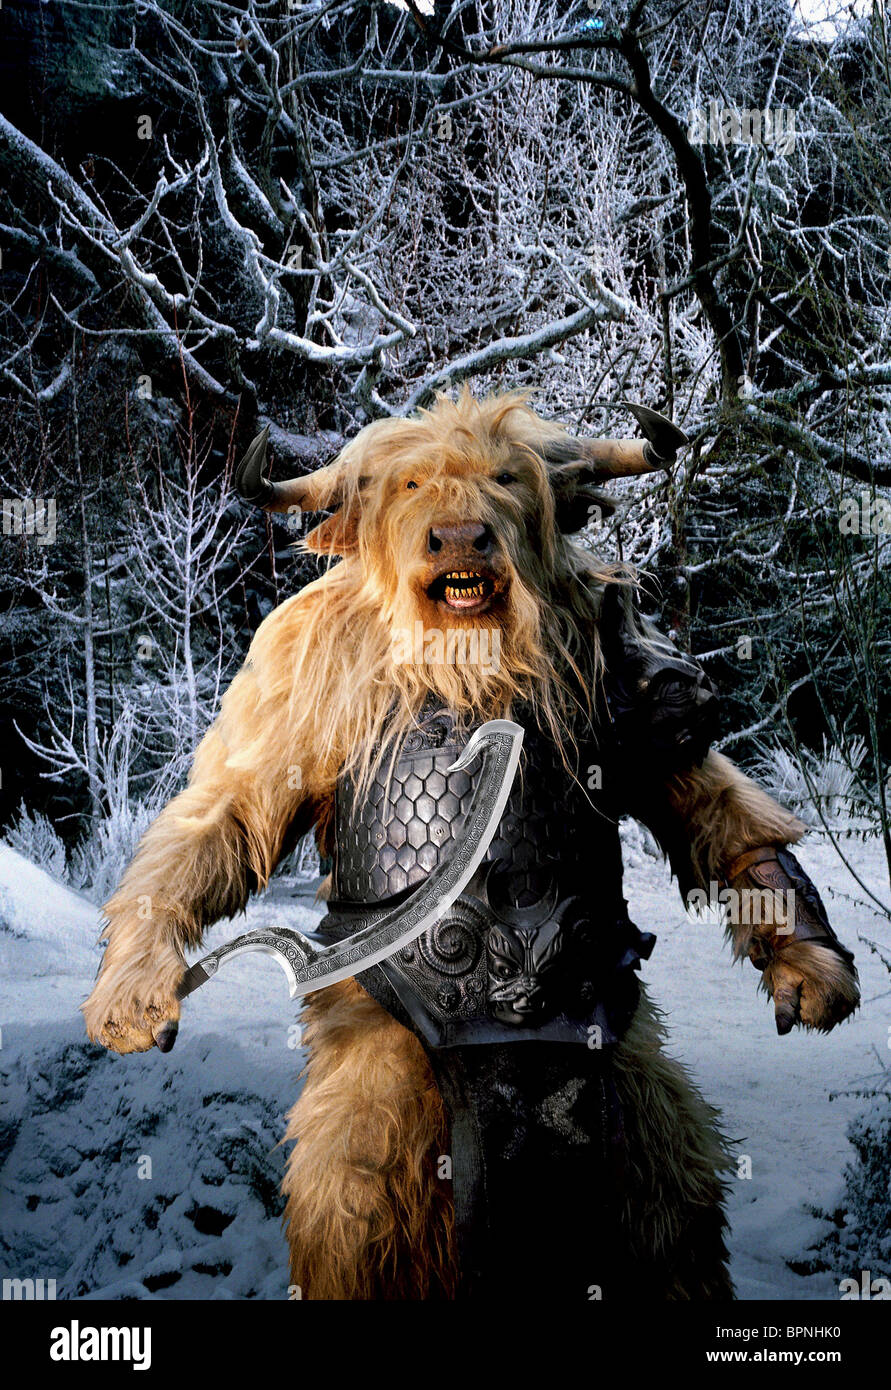 SATYR THE CHRONICLES OF NARNIA: THE LION THE WITCH AND THE WARDROBE (2005) - Stock Image